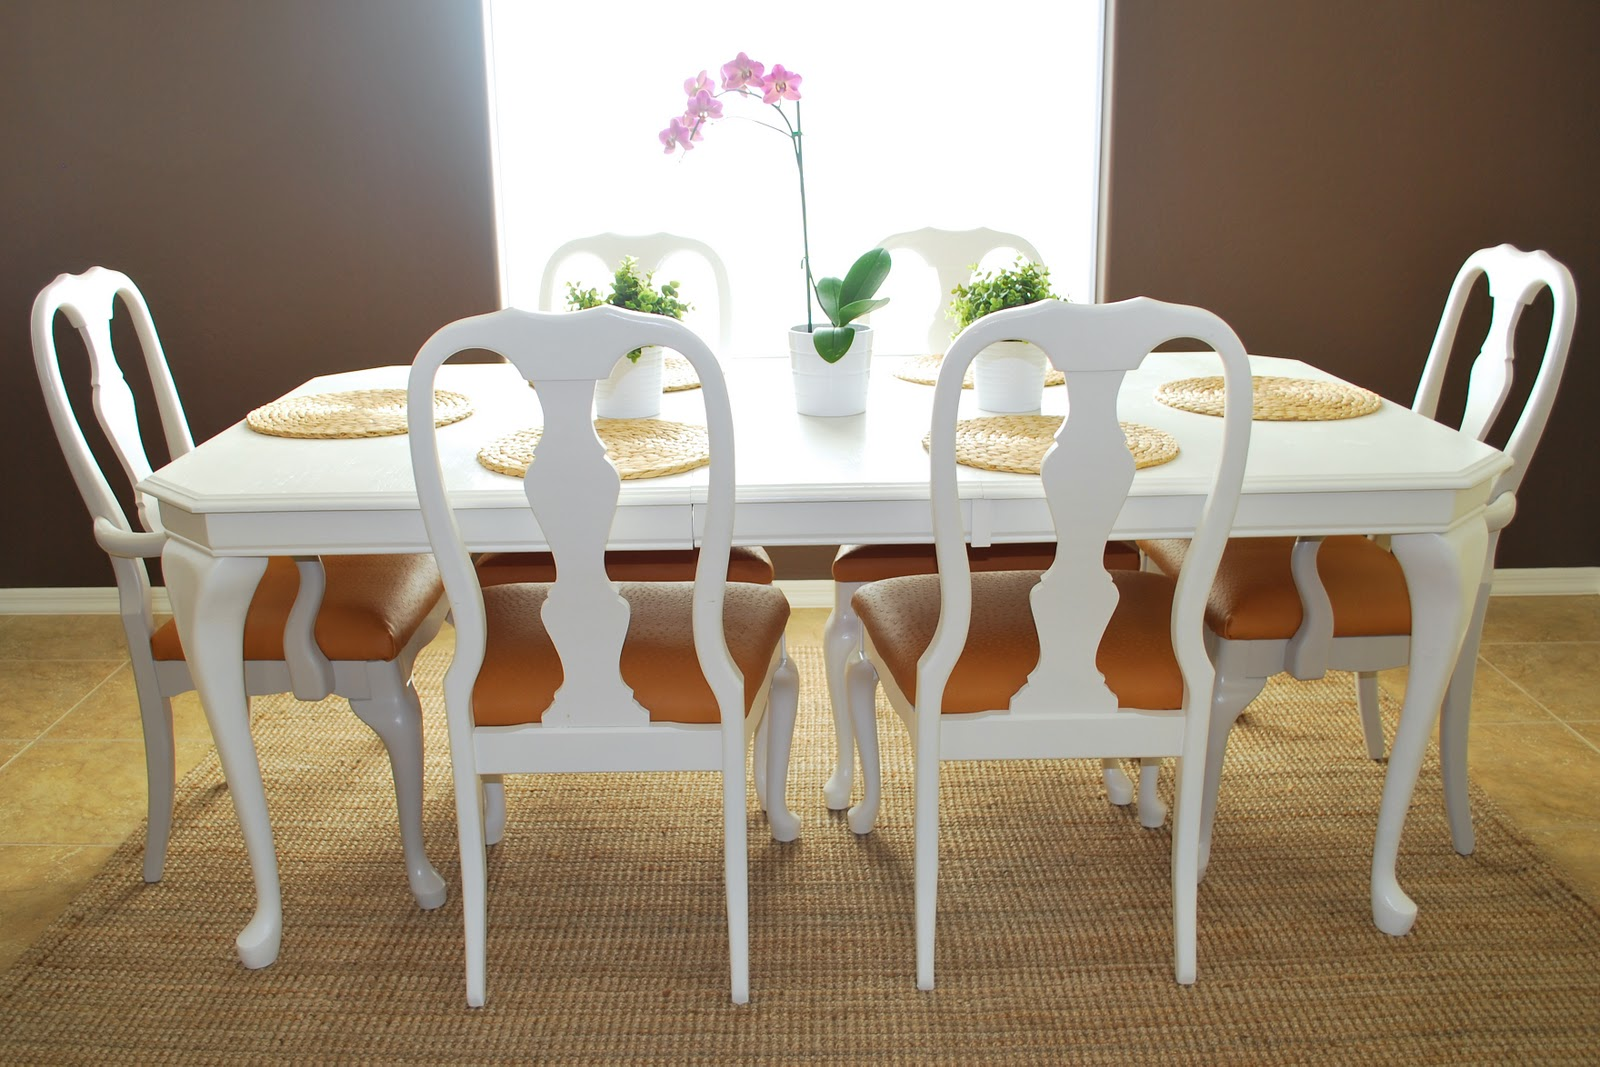 Refinished Dining Room Table And Chair Re Upholstery Tutorial (3) Part 27